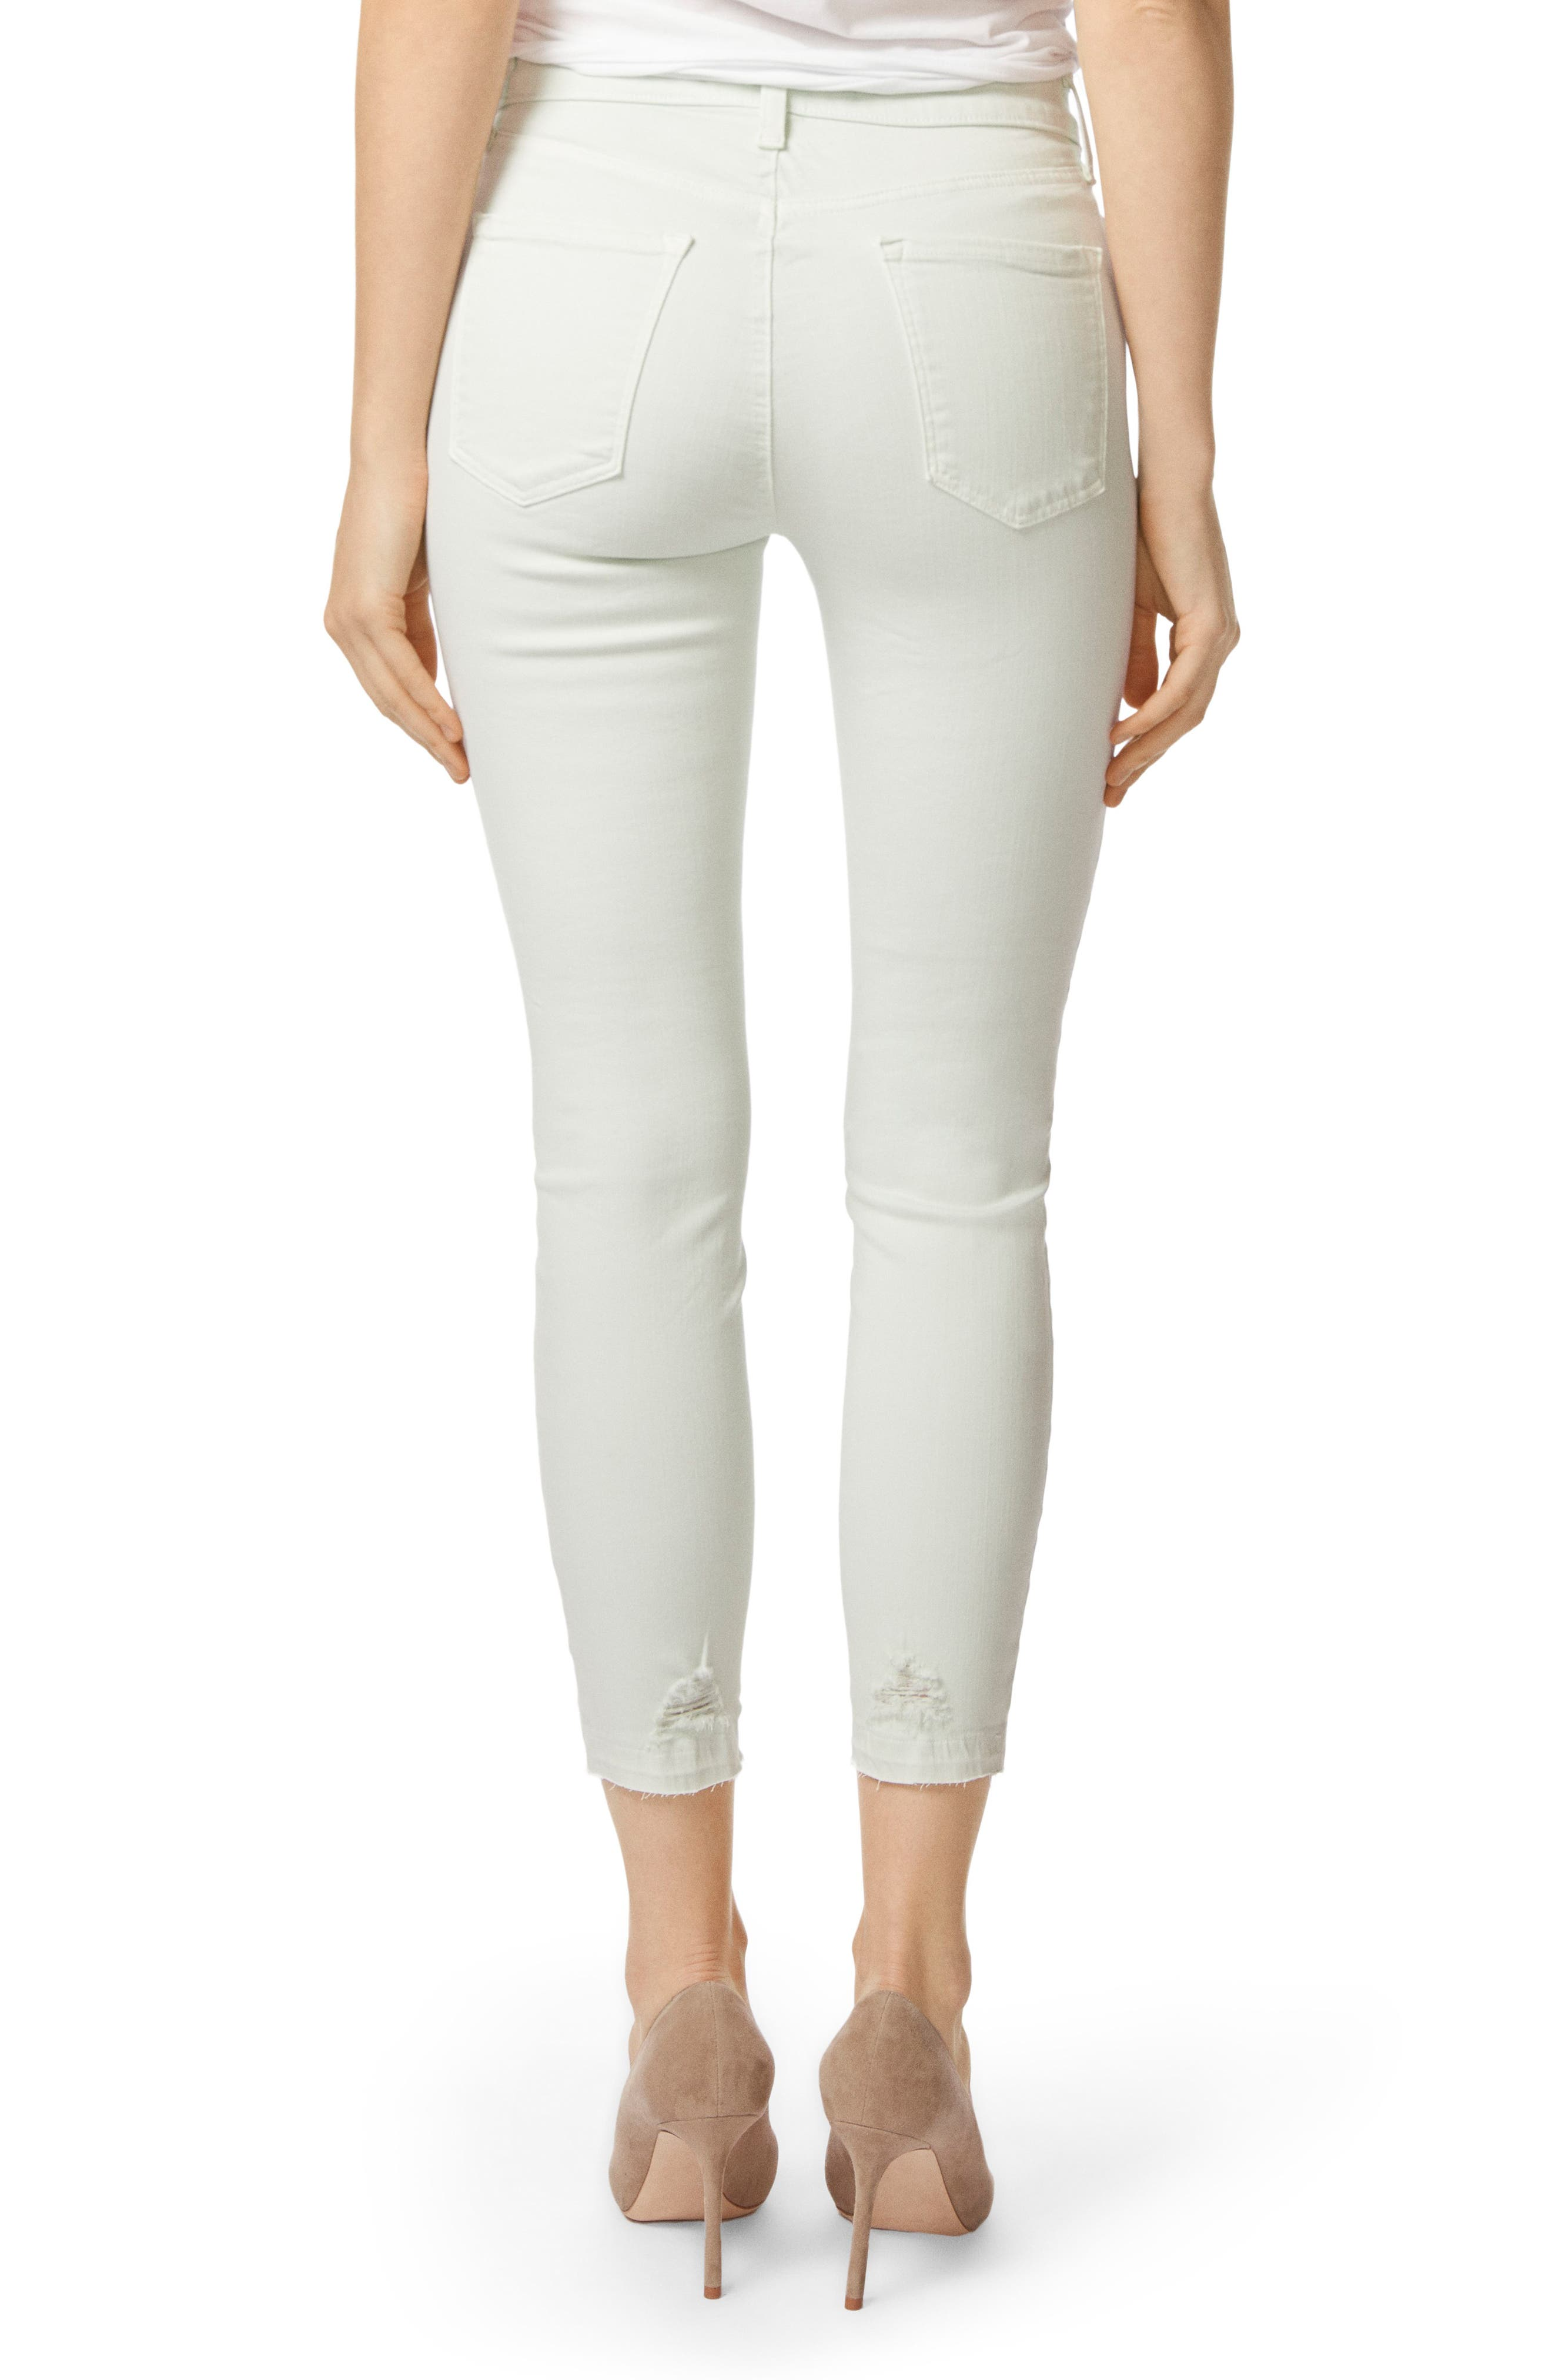 'Alana' High Rise Crop Skinny Jeans,                             Alternate thumbnail 2, color,                             336